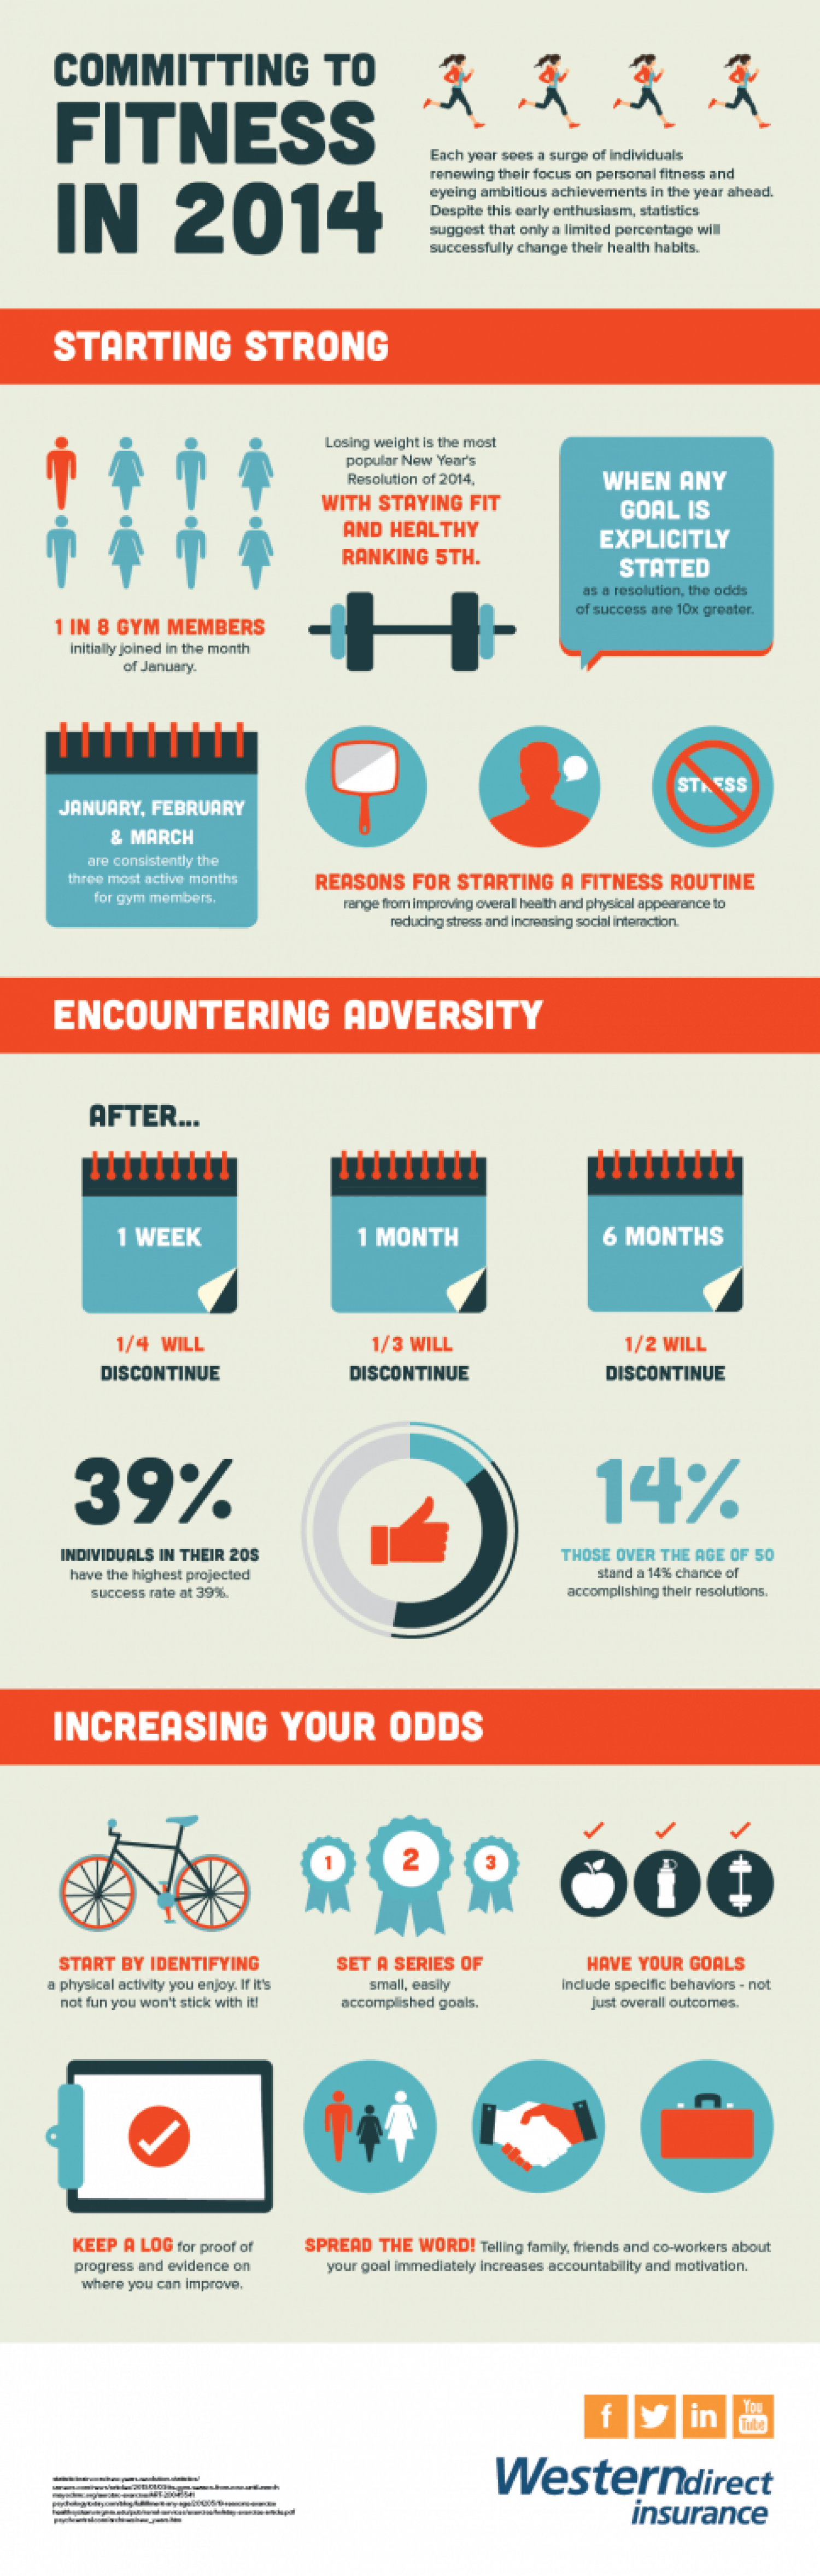 Committing to Fitness in 2014 Infographic